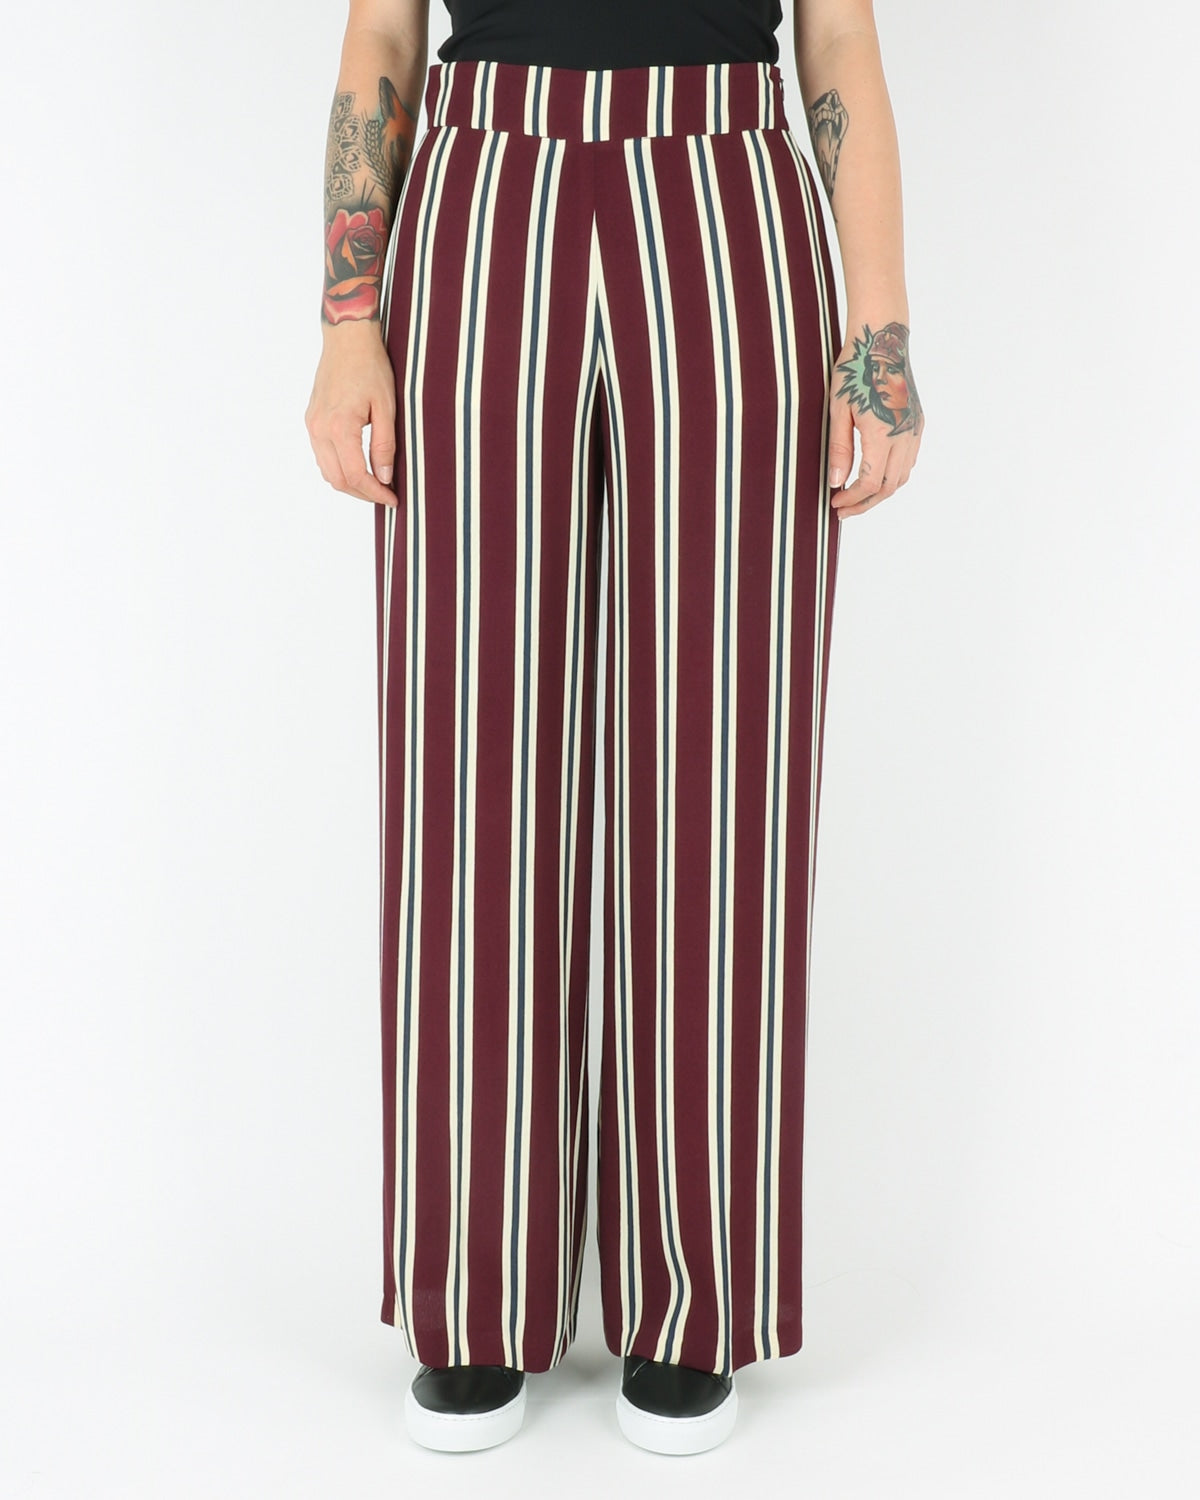 libertine libertine_blonde trousers_wine_view_1_2